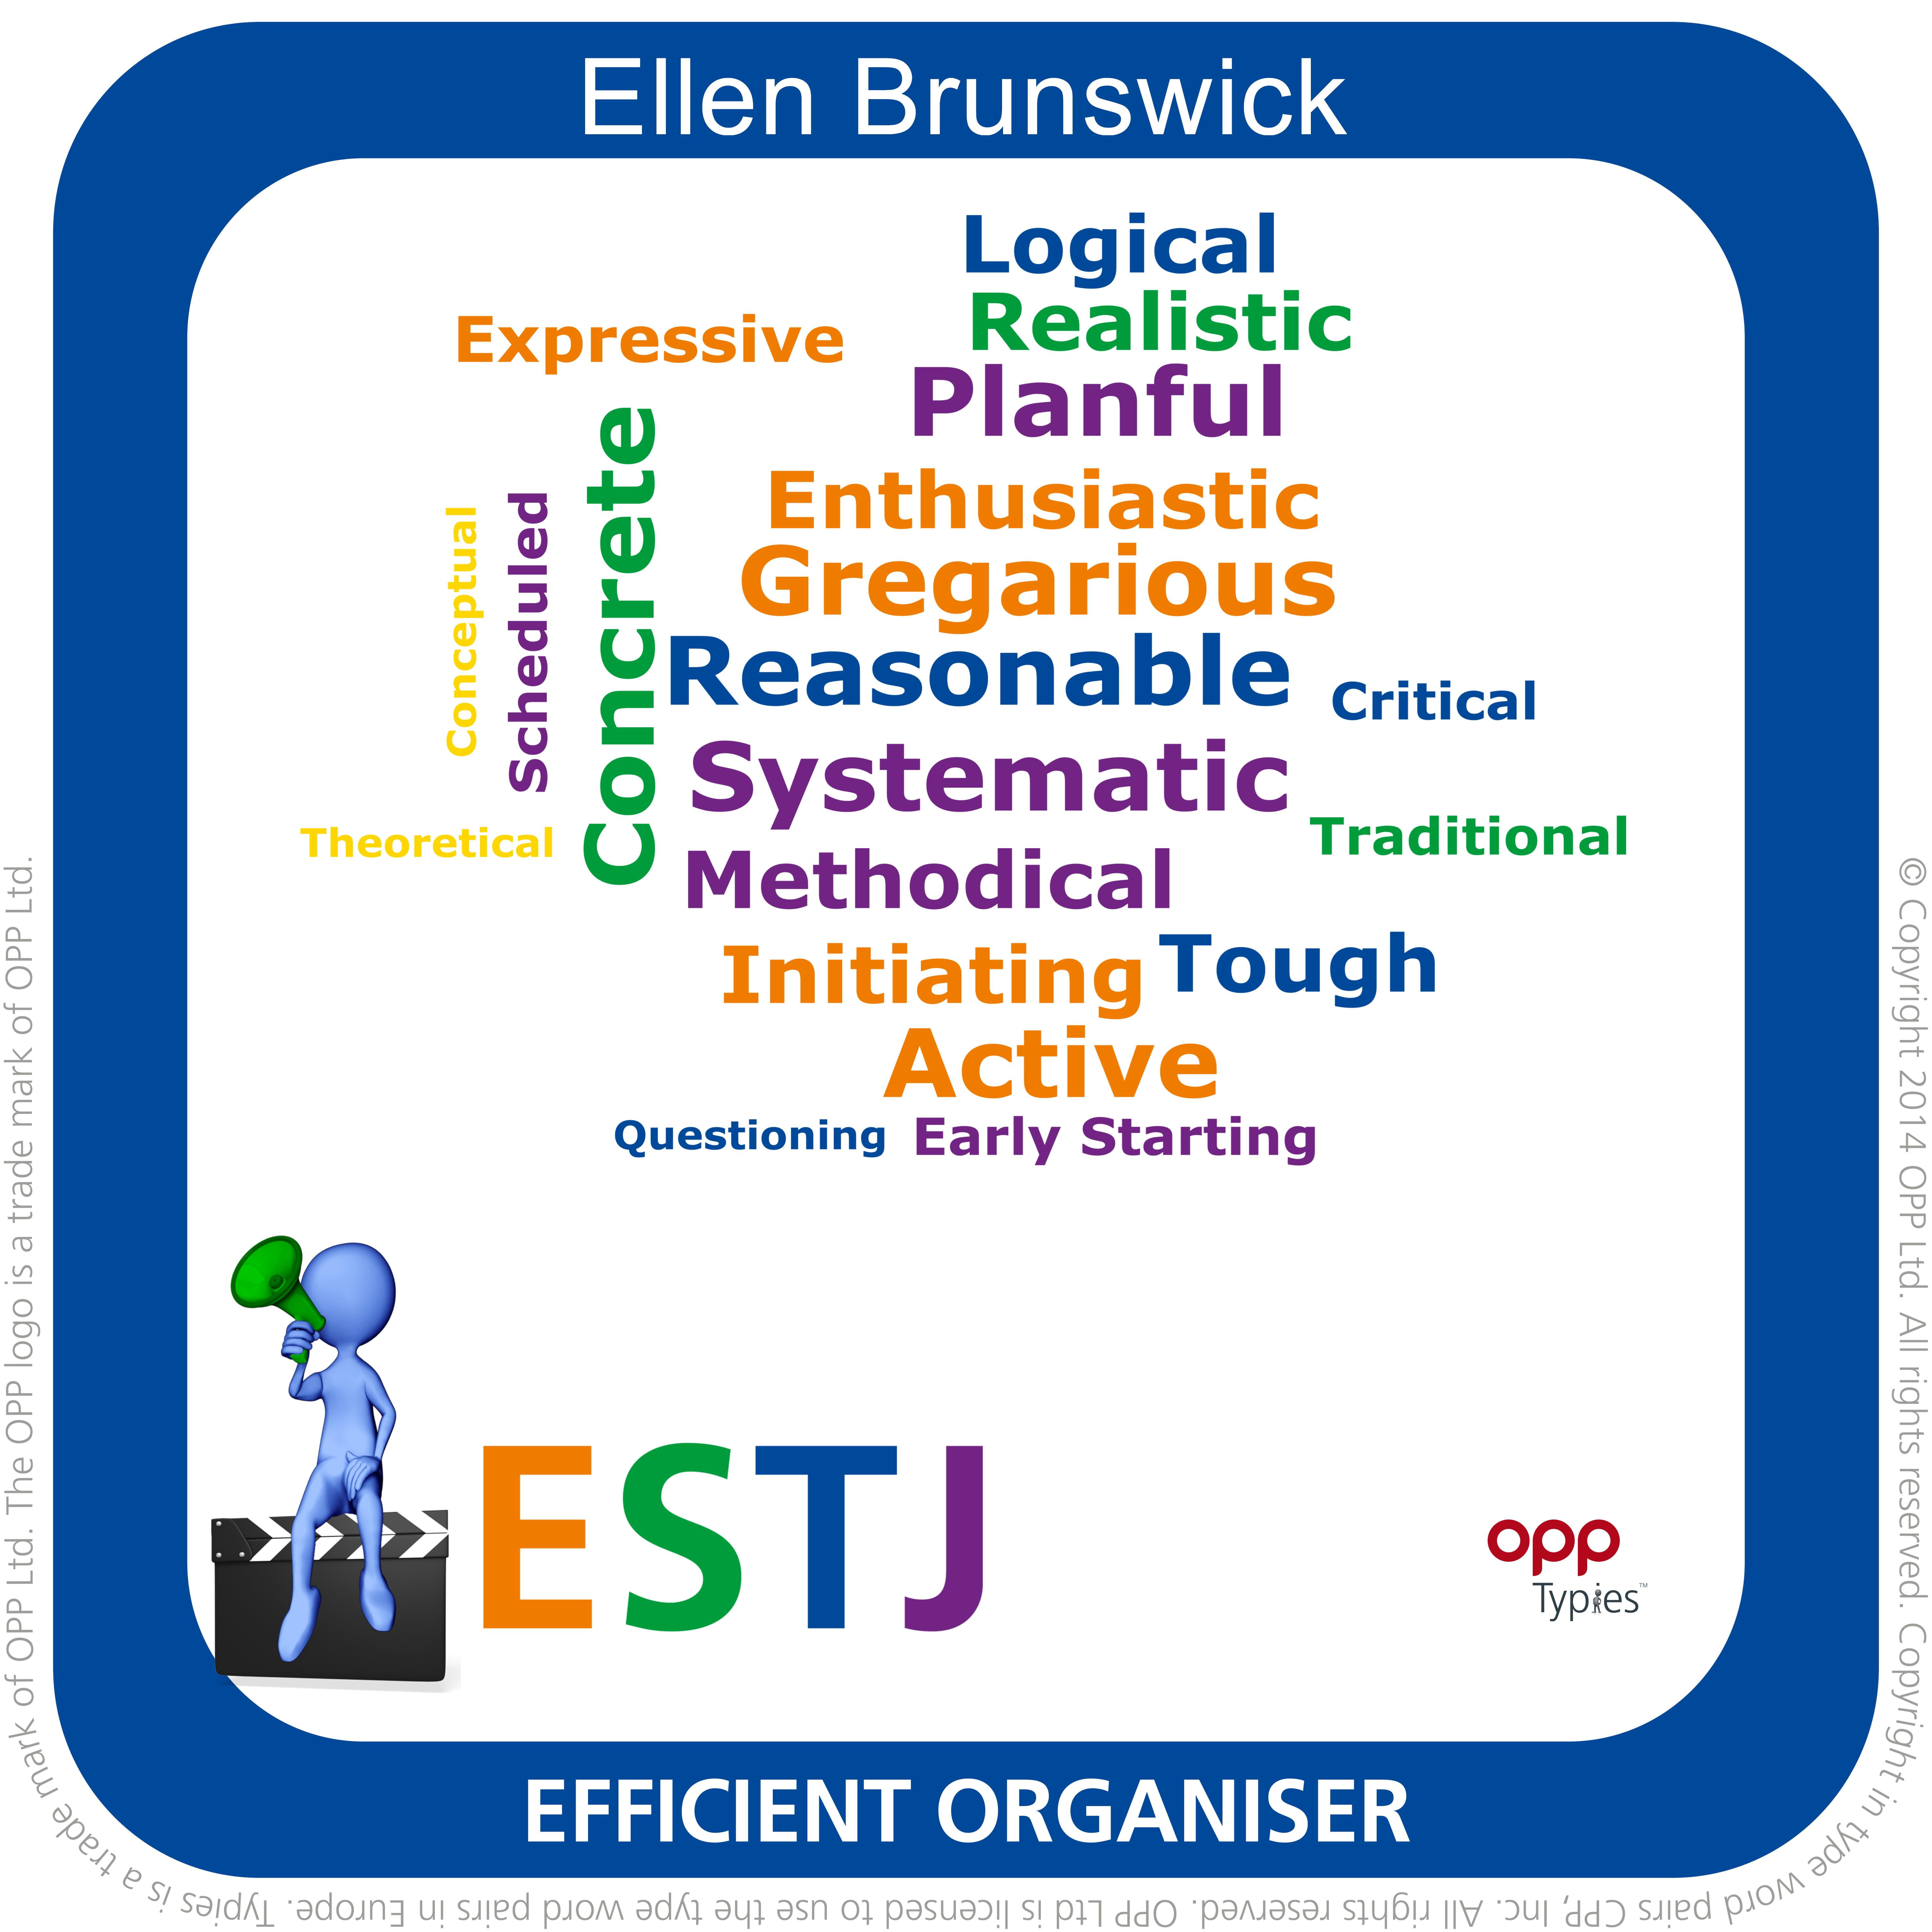 ESTJ Step II Typie example